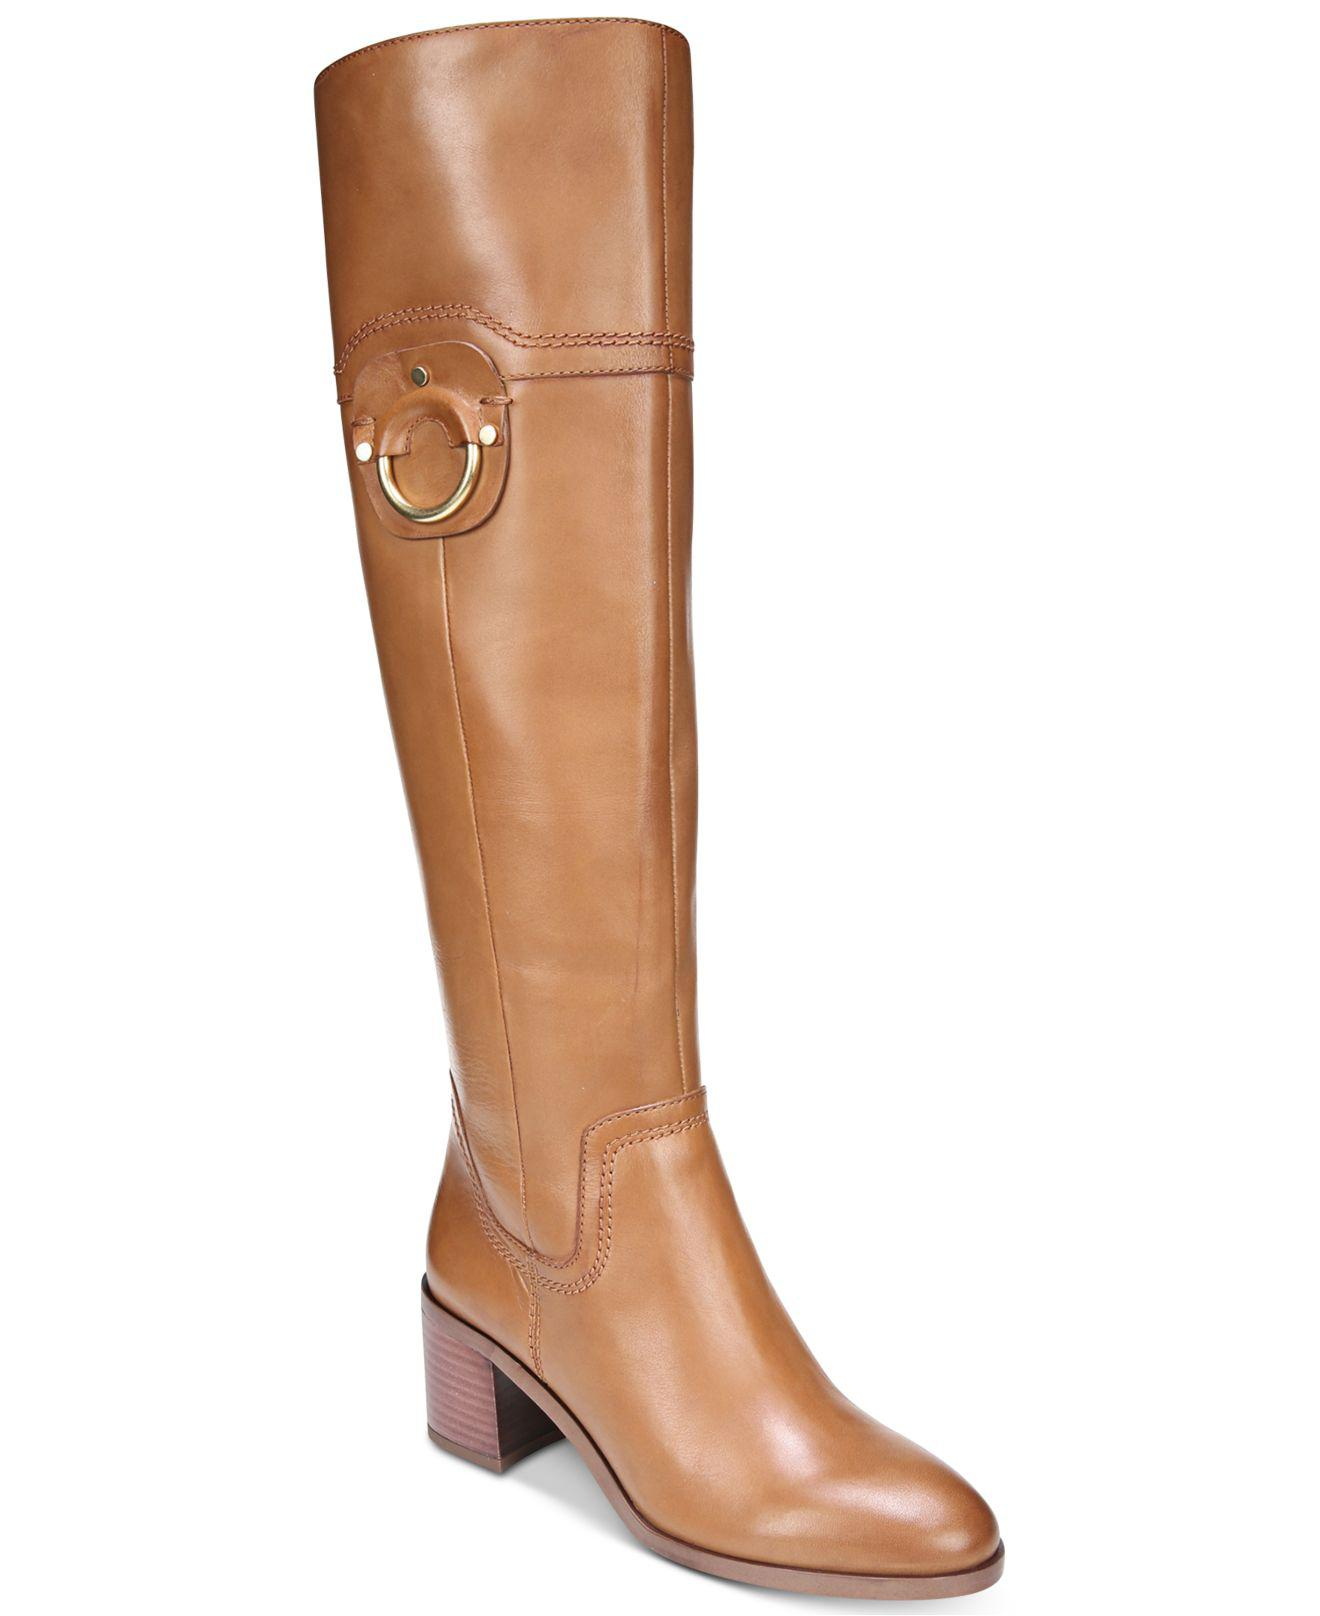 199025b974a Lyst - Franco Sarto Beckford Wide-calf Dress Boots in Brown